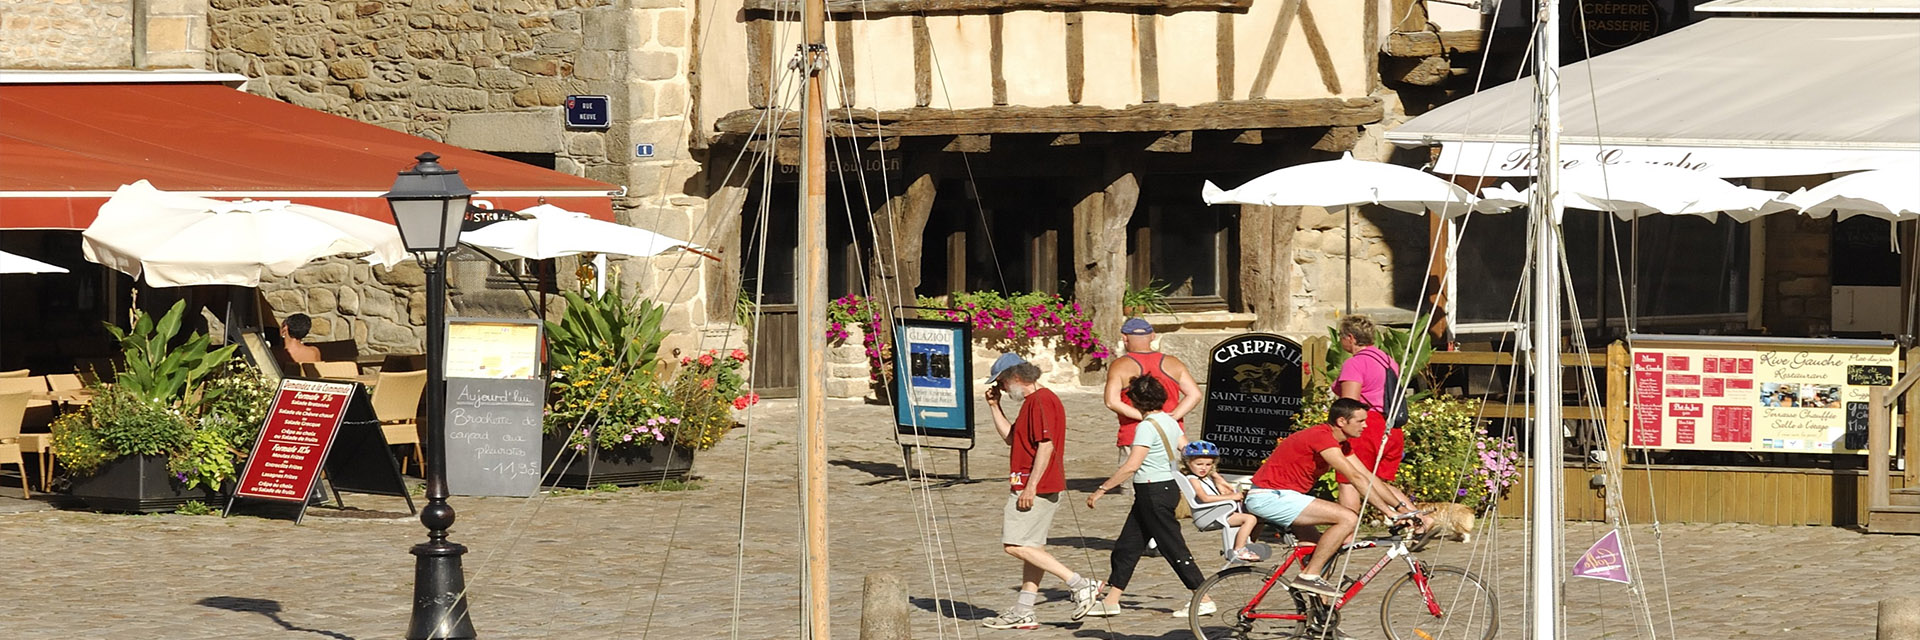 village-vacances-kerfetan-auray-ville